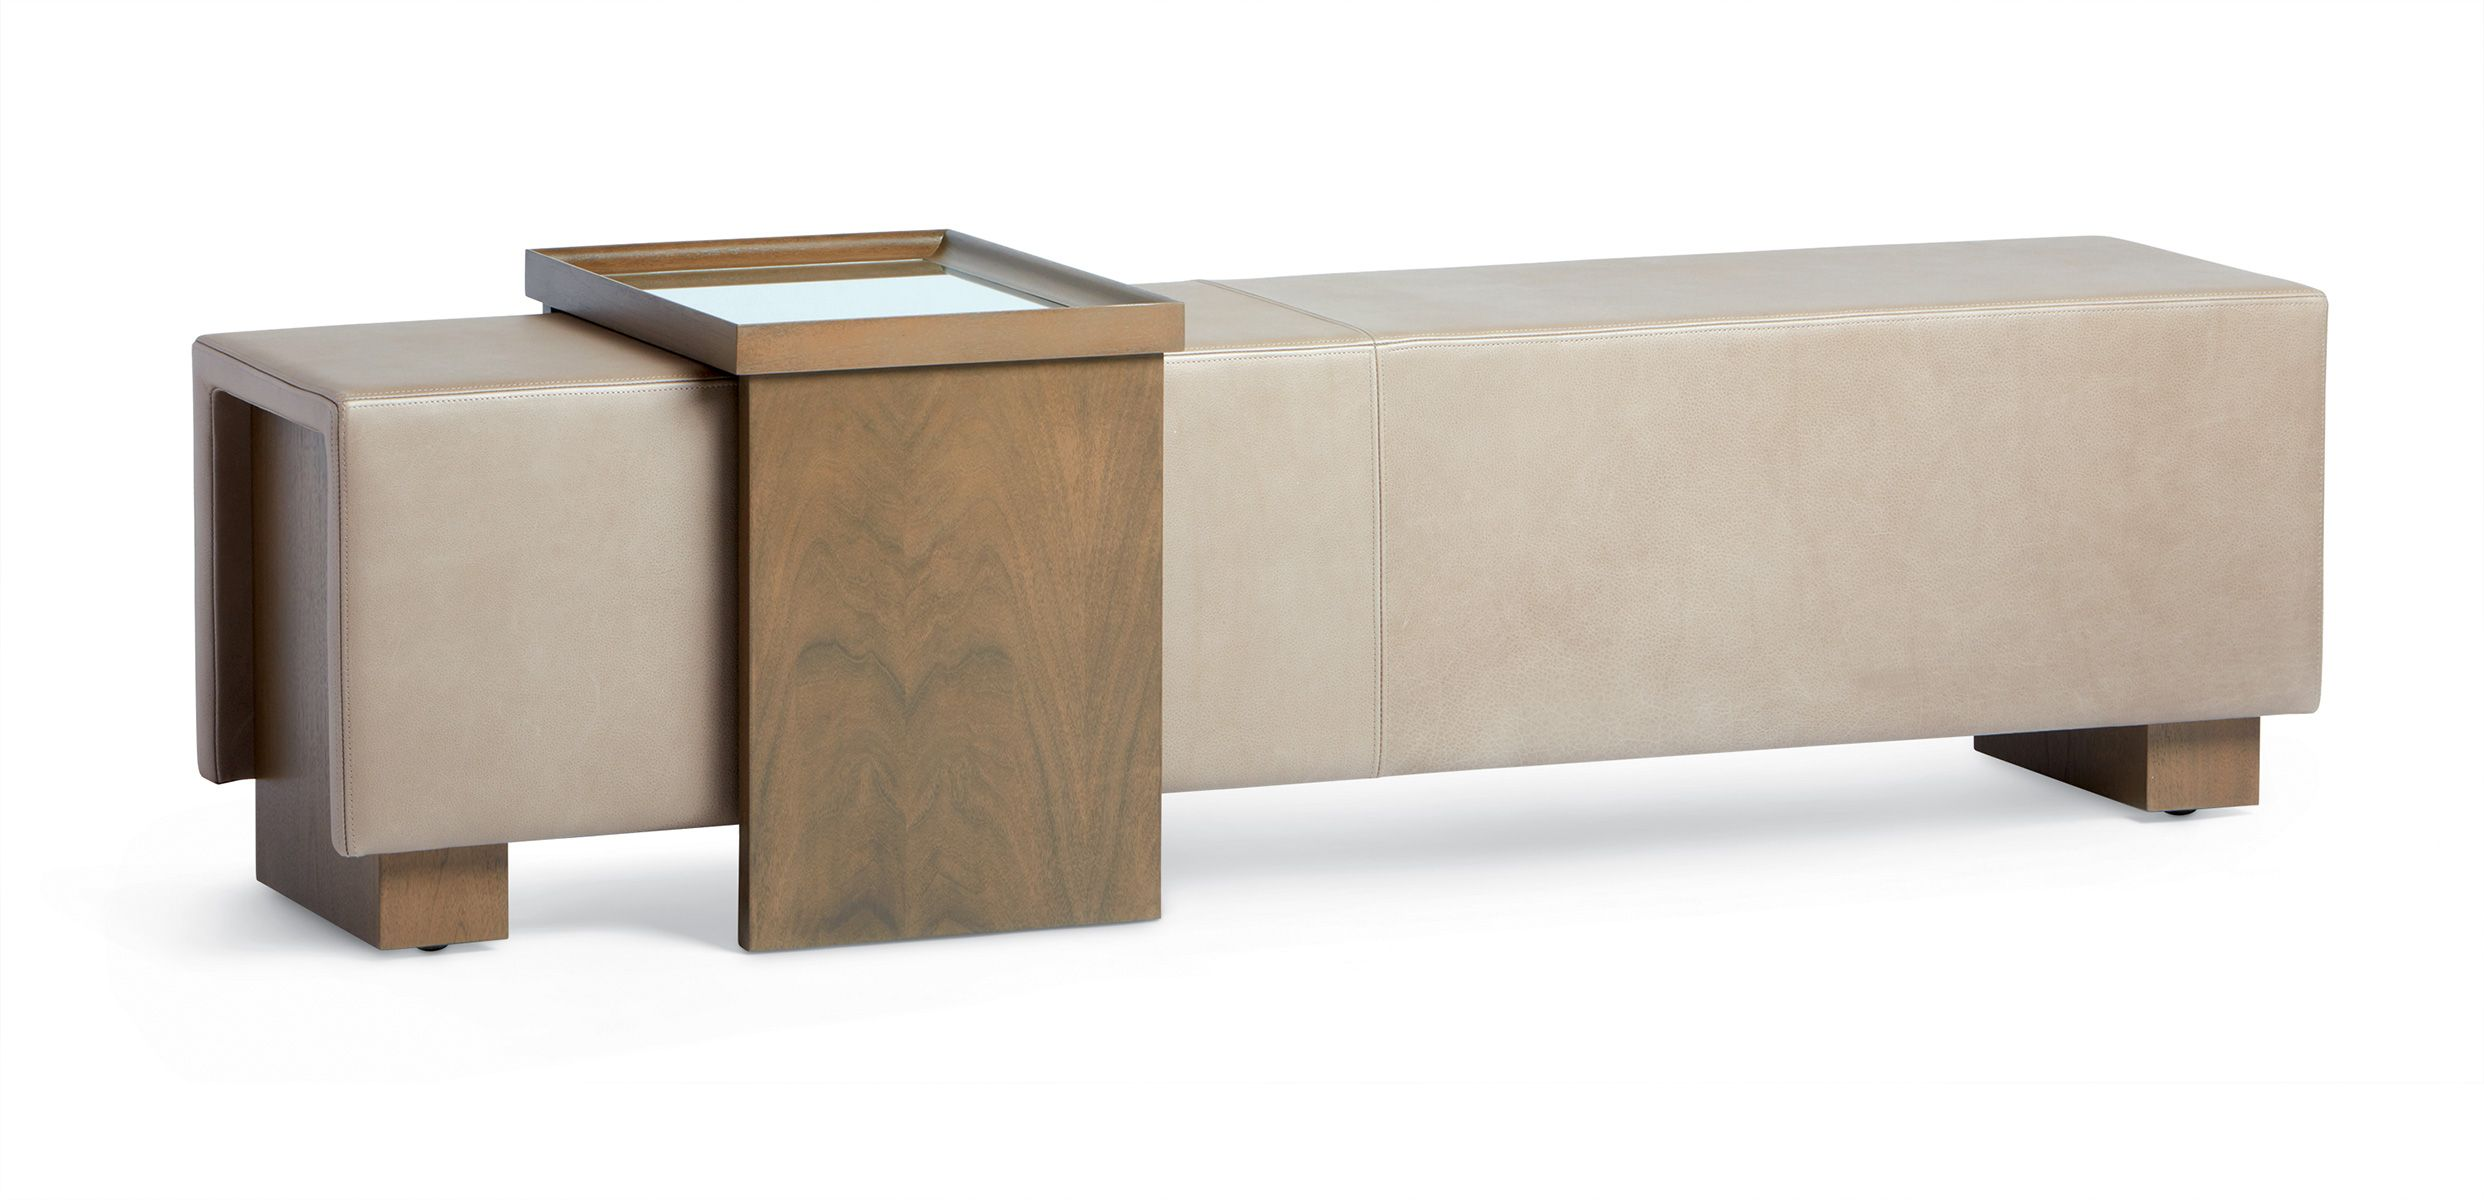 Incredible Weekend Bench Troscan Design Furnishings Our Furniture Gamerscity Chair Design For Home Gamerscityorg